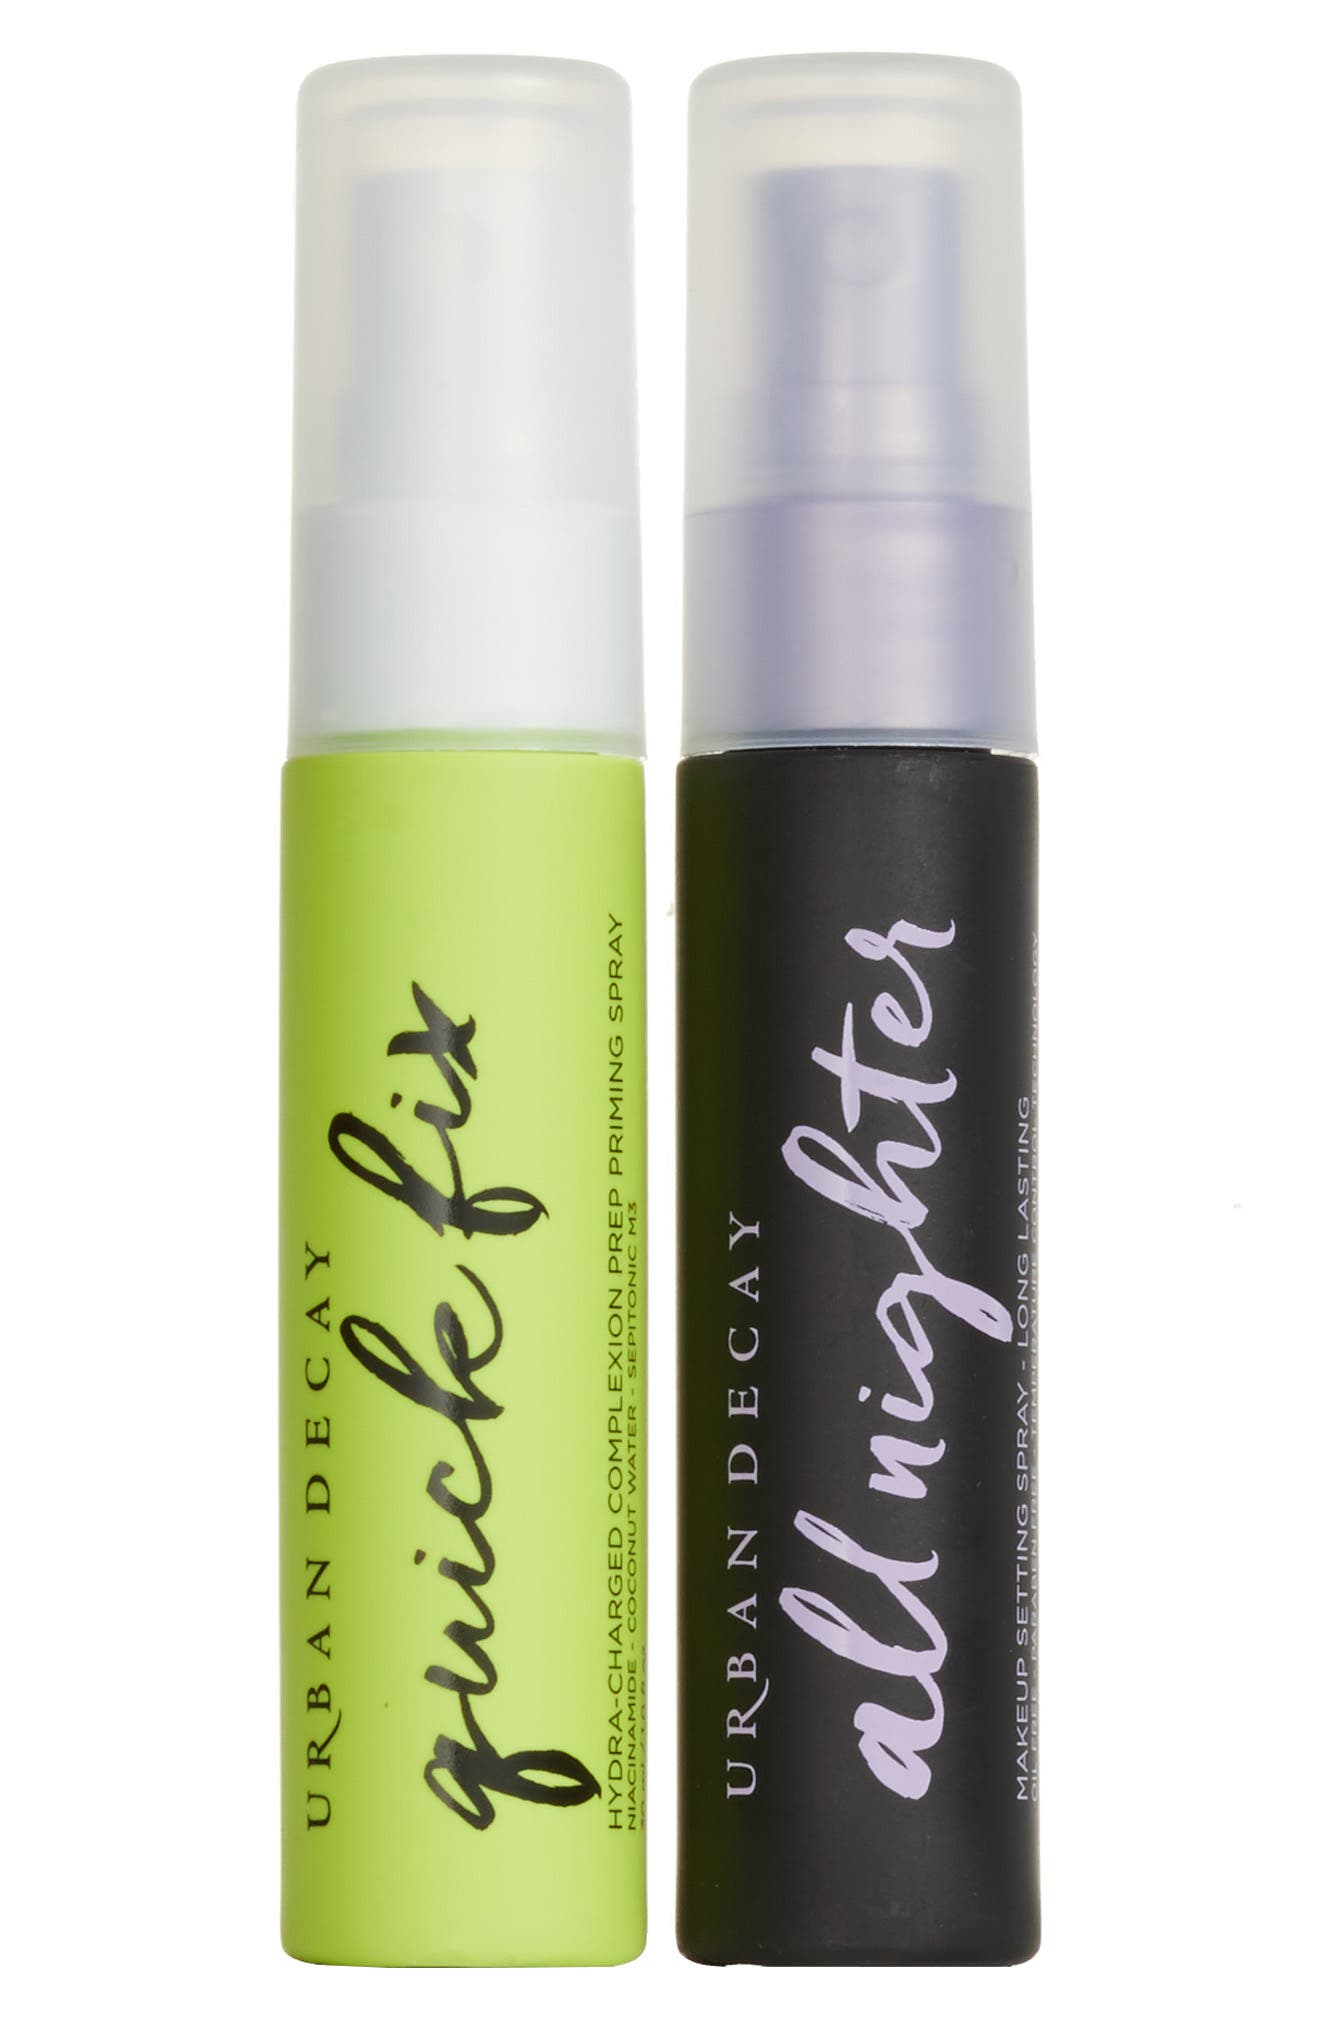 Main Image - Urban Decay All Day All Night Travel Duo ($30 Value)